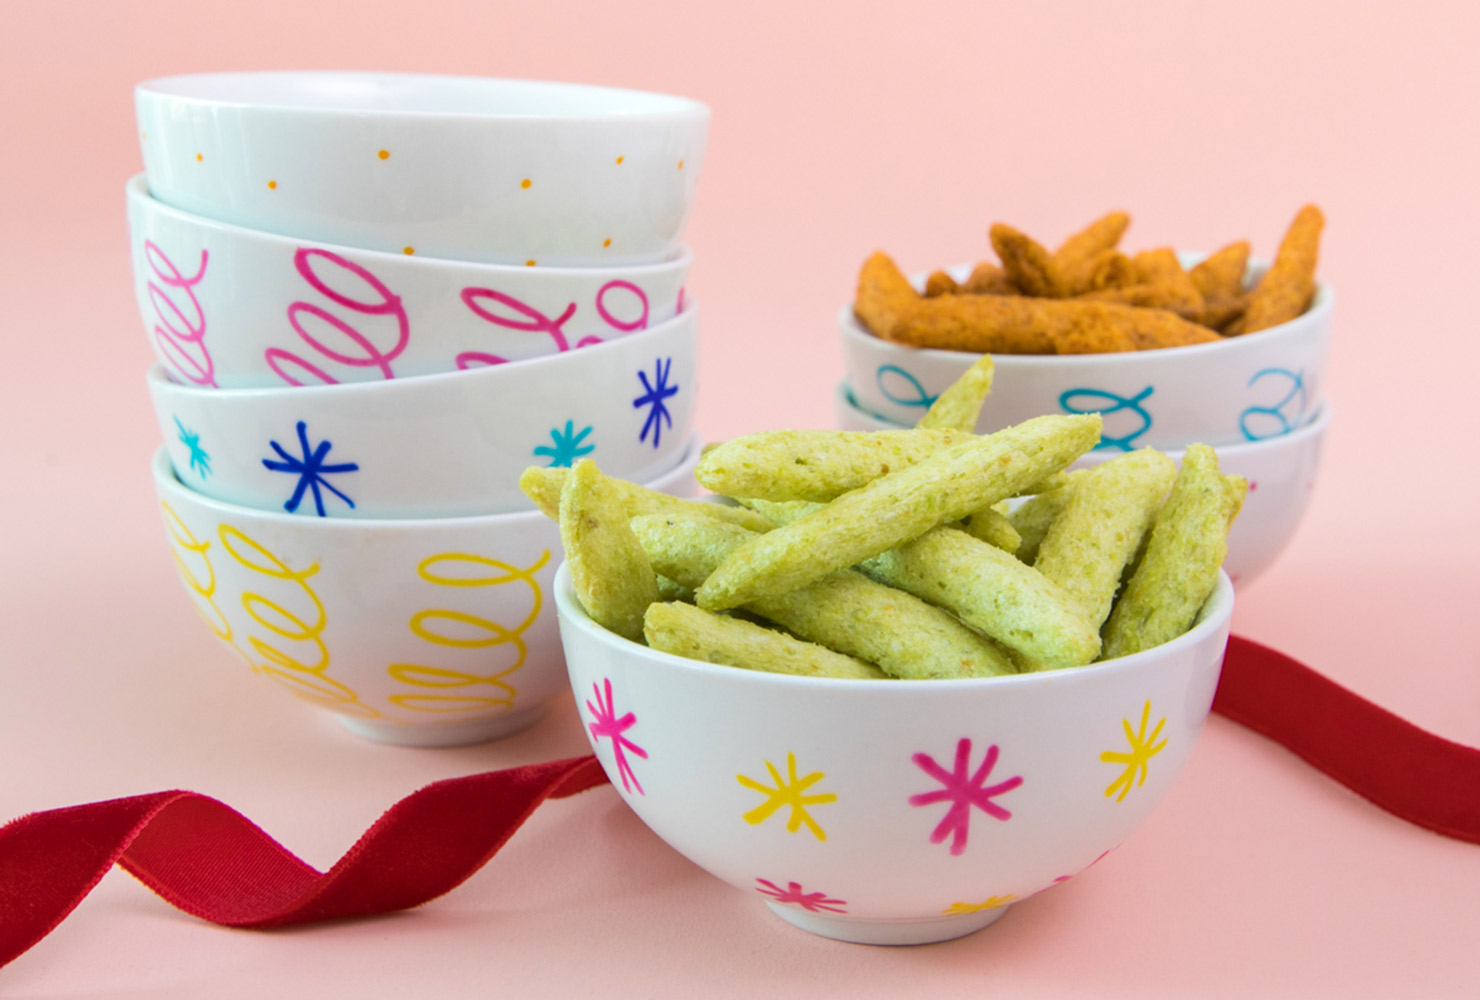 Tremendous Snack Bowl Set Friend Gift Friend Gift Ideas Love Shutterfly Dish Refer A Friend Commercial Actor Dish Network Refer A Friend Code baby shower Dish Refer A Friend